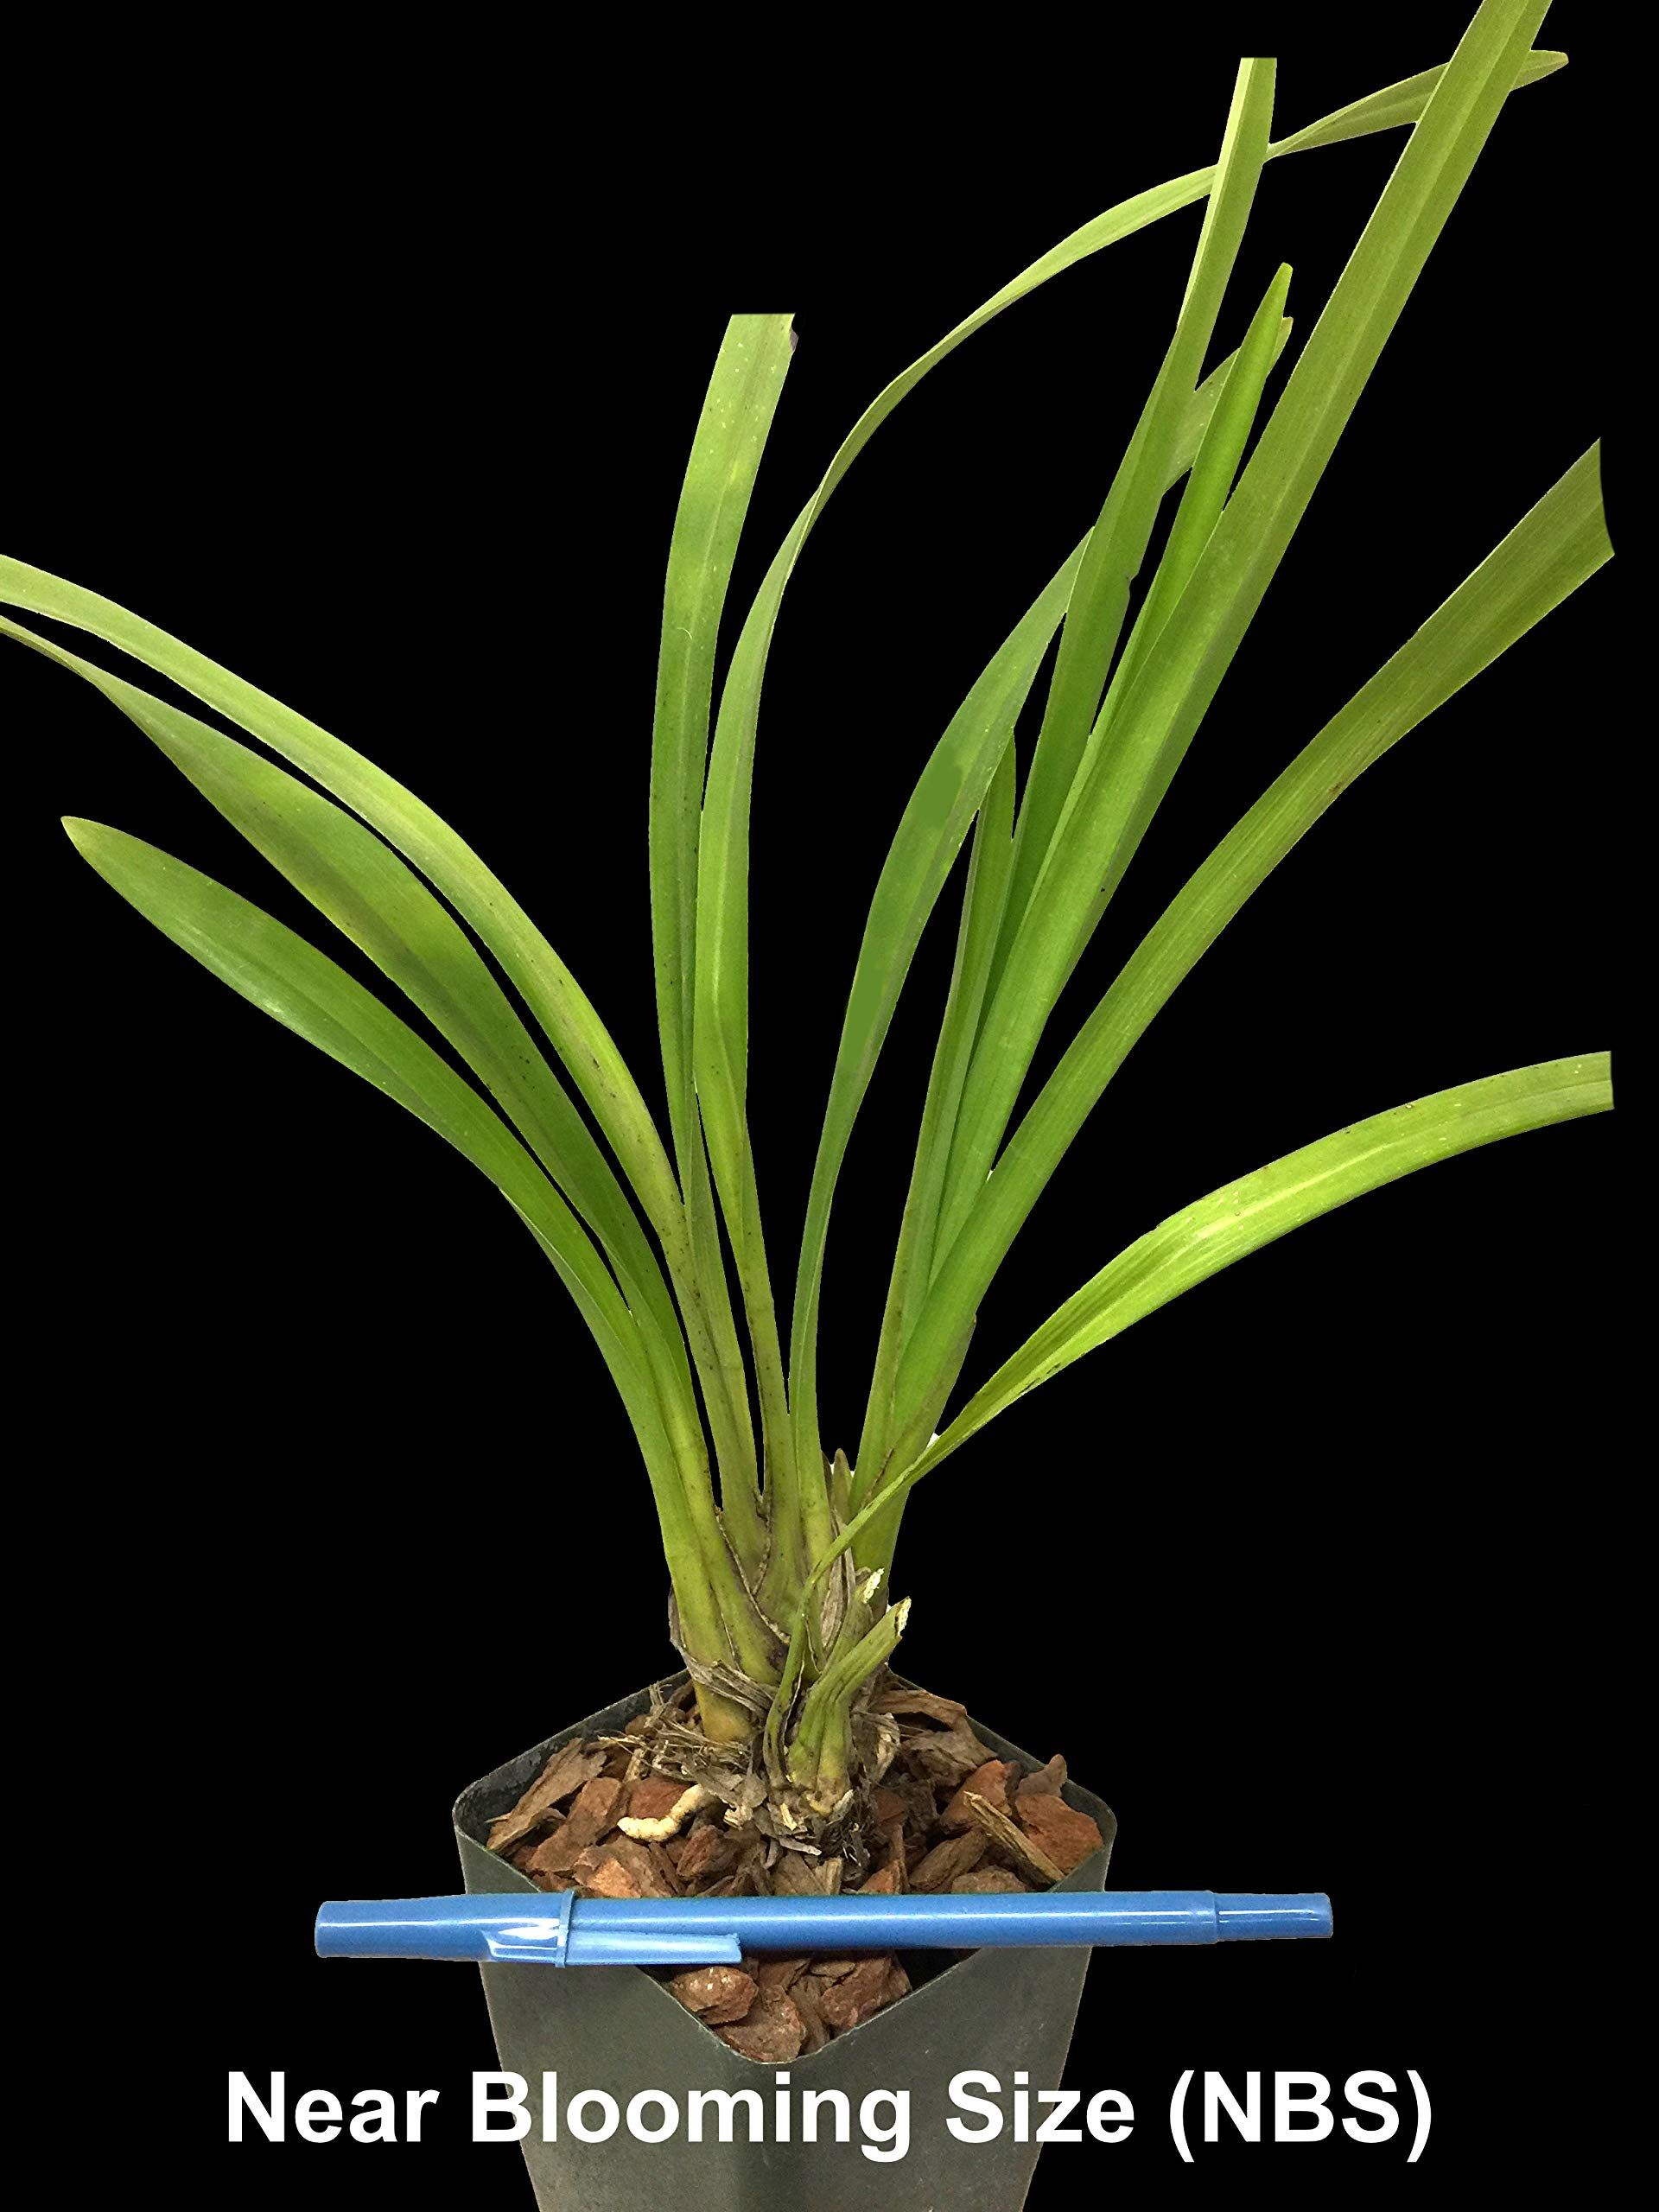 Orchid Insanity Pennys Worth Cymbidium Cute Pink Blooms Pendulous Flower Spike Easy To Grow Not In Bloom When Shipped Read Flower Spike Orchids Cute Pink